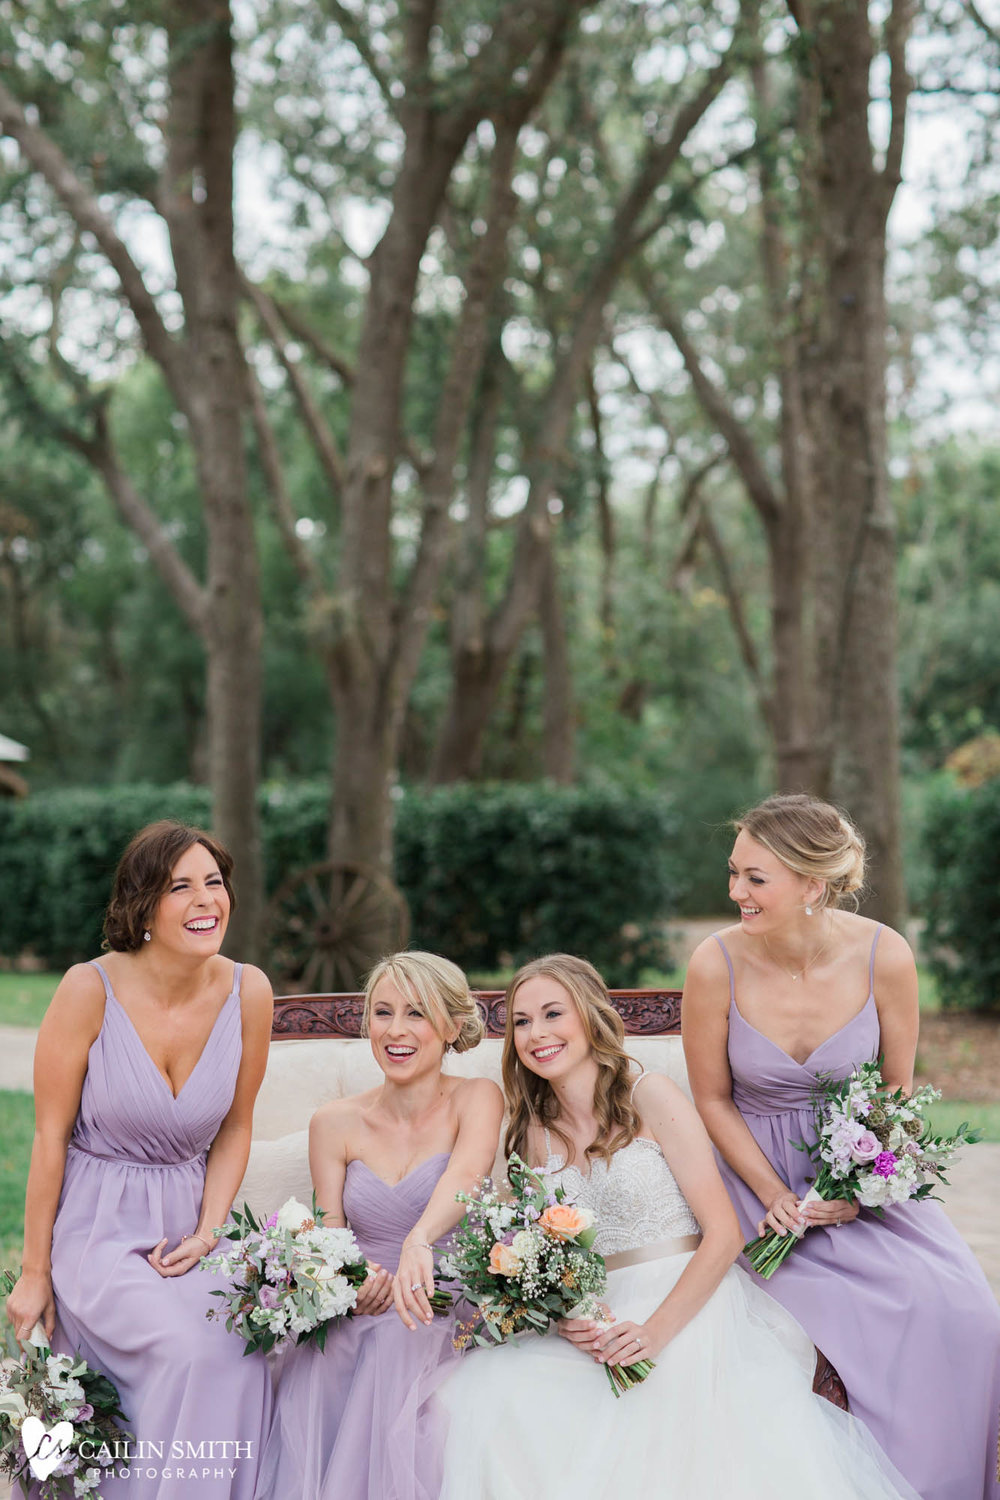 Sylvia_Anthony_Bowing_Oaks_Plantation_Wedding_Photography_0016.jpg